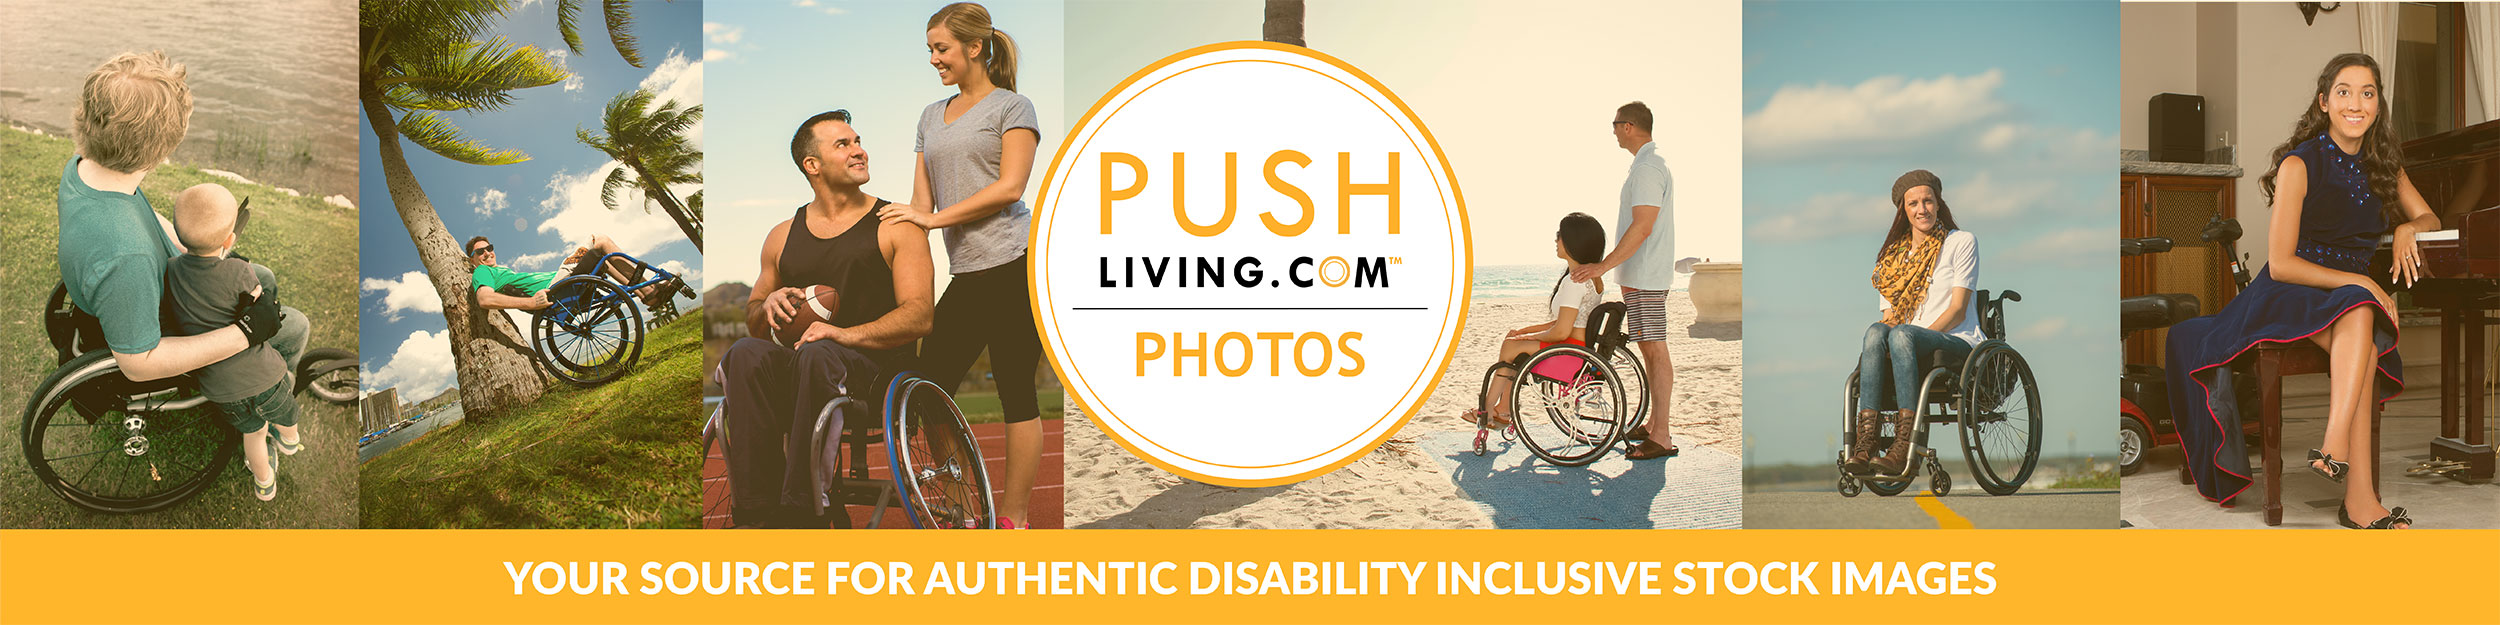 Pushliving Photos - Your source for authentic disability inclusive stock images